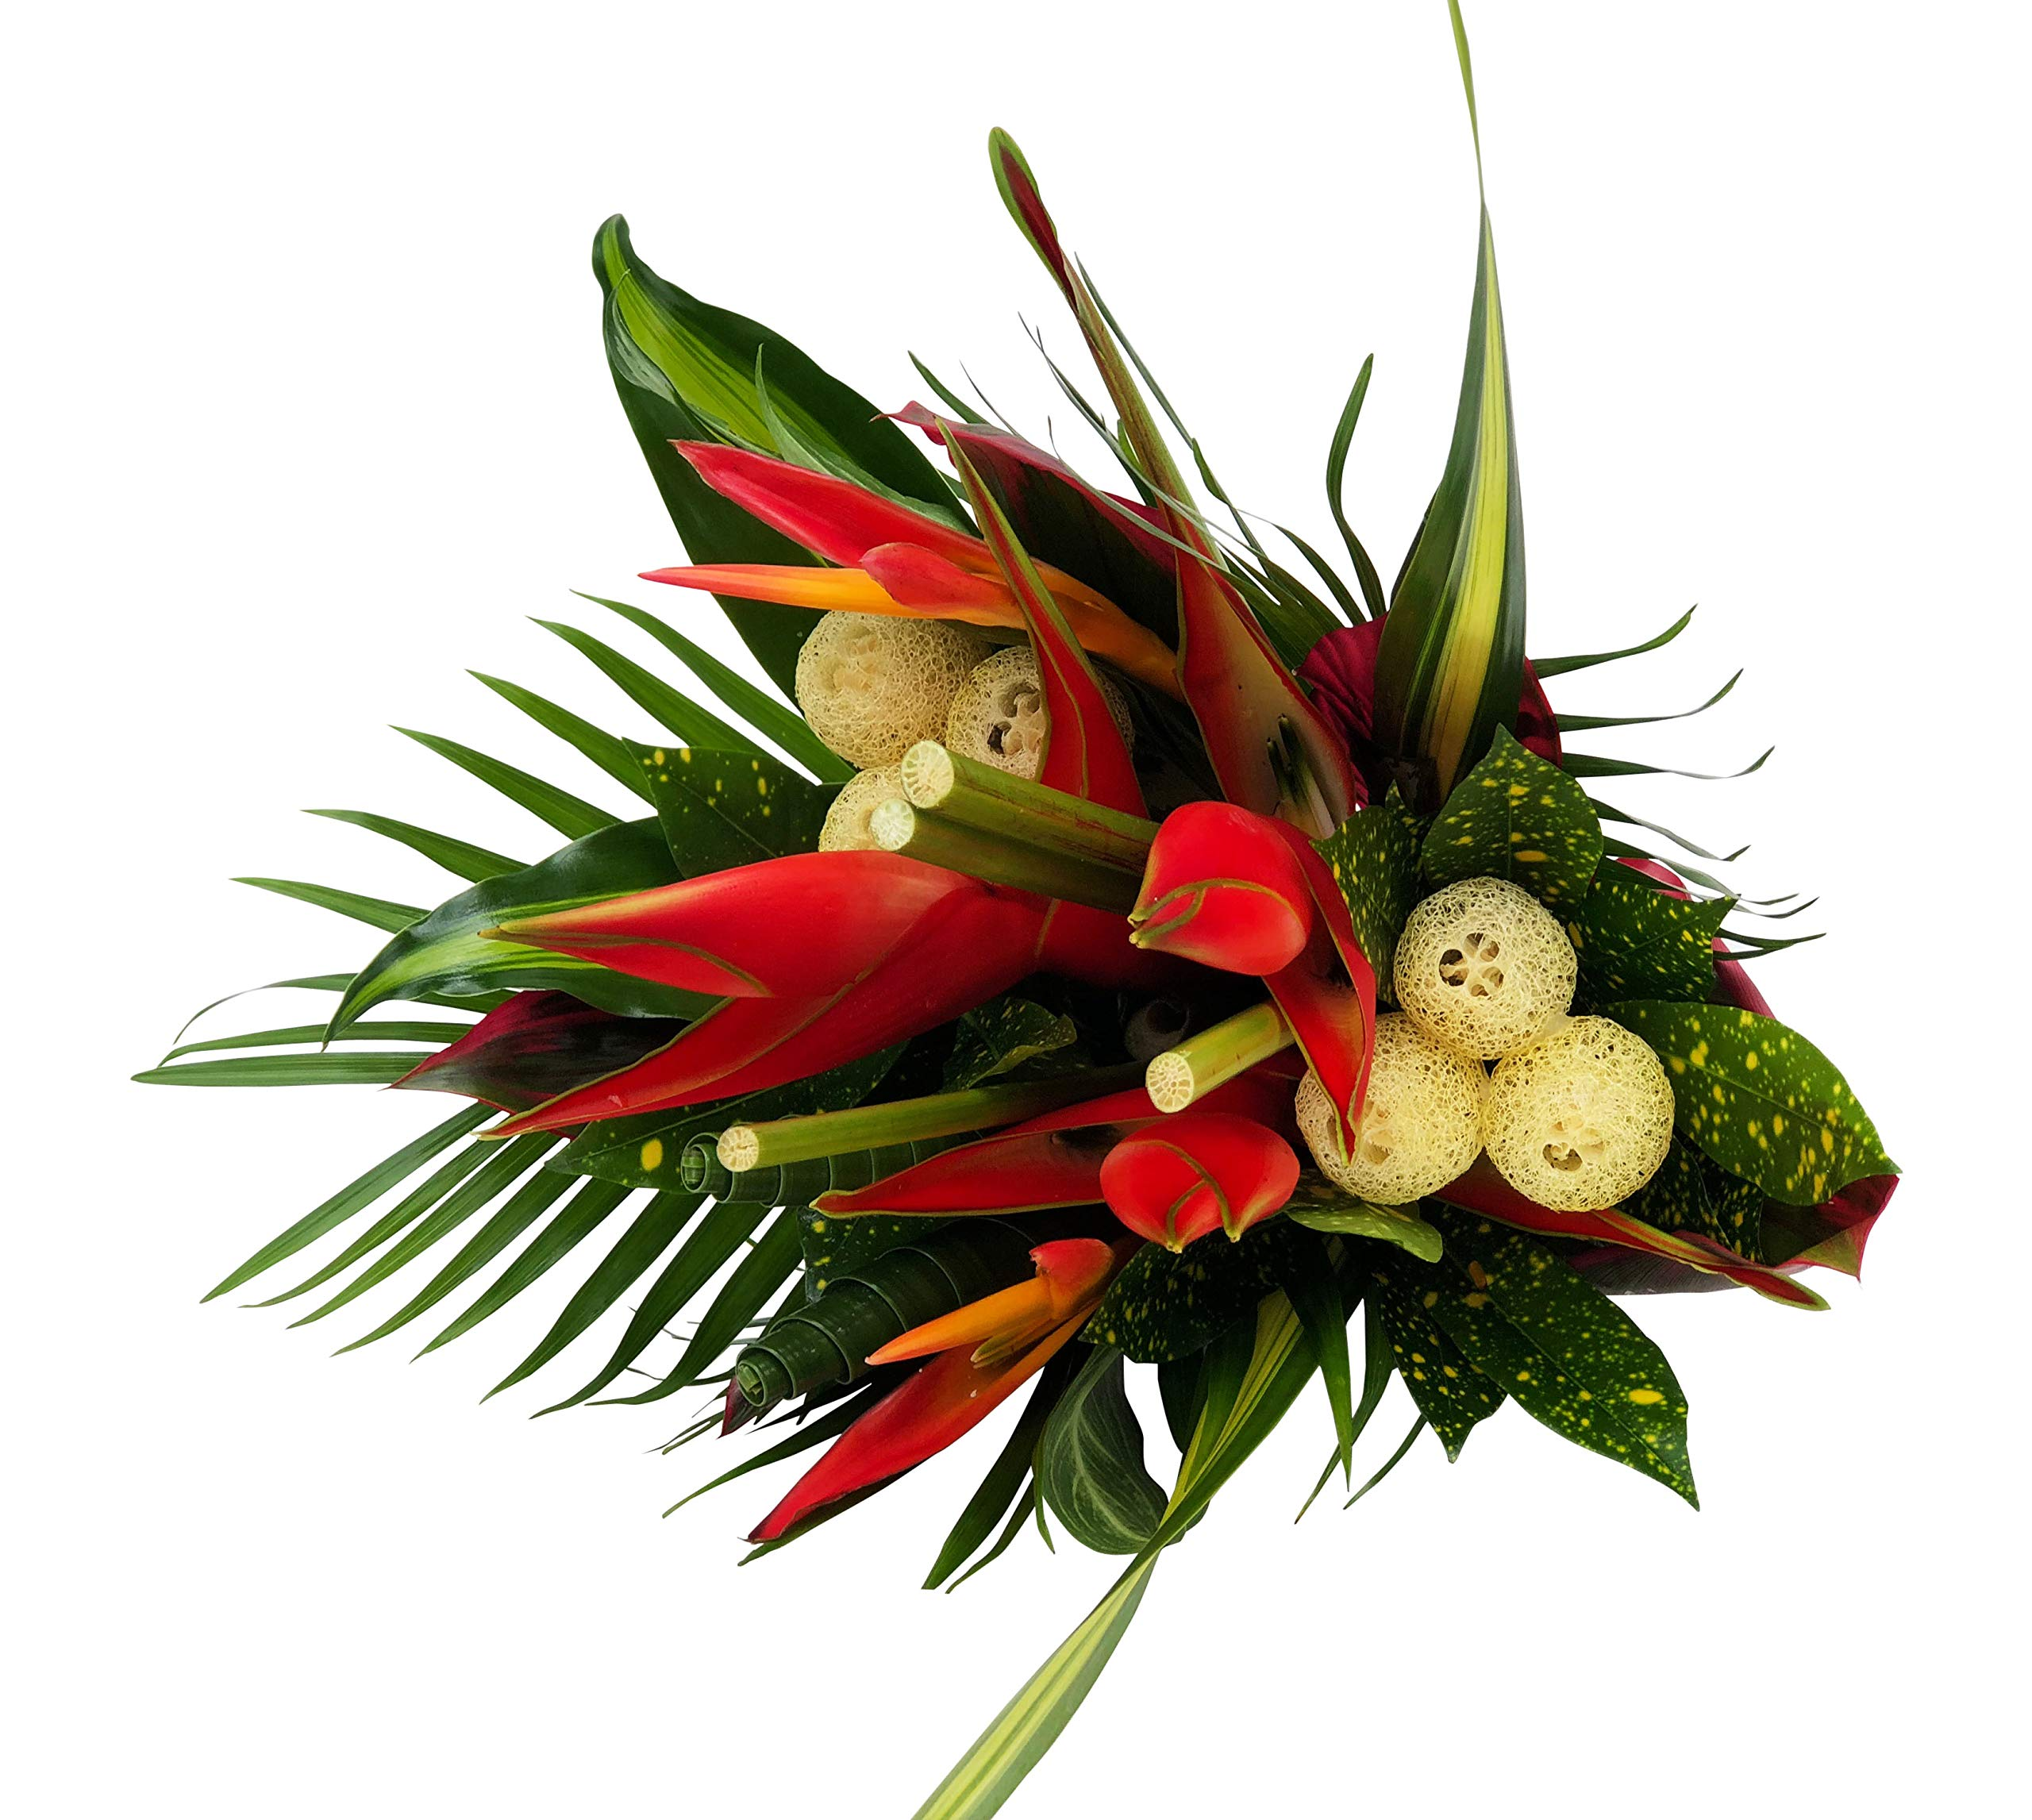 Tropical Bouquet Rainforest Sunrise with Birds of Paradise, Loofah, Lobster Claw, and Tropical Greenery